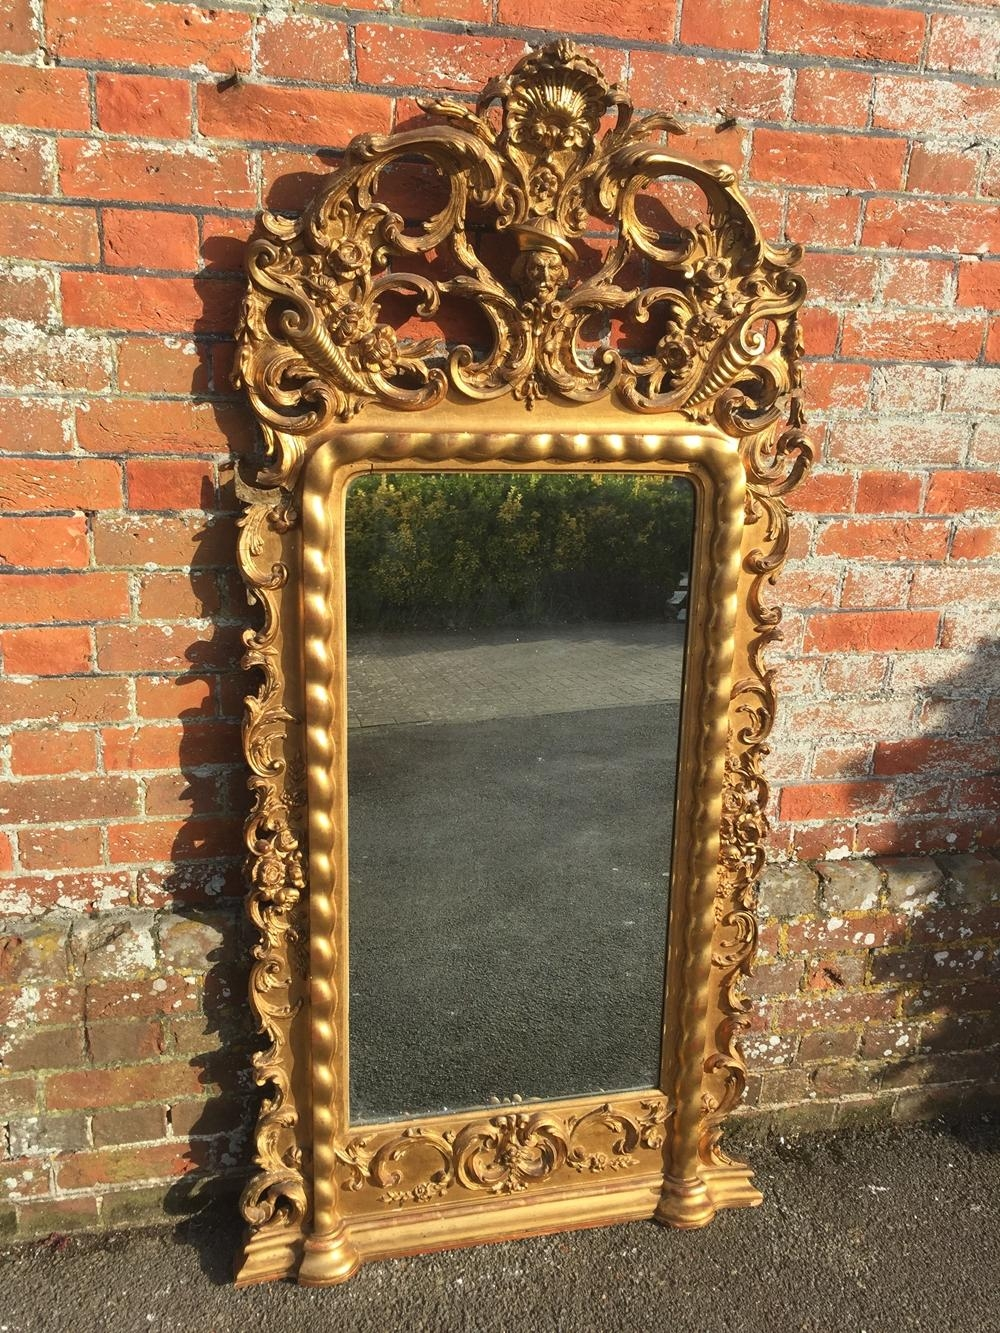 Large Overmantle Mirrors Uk – Antique Overmantle Mirrors For Sale Within Antique Mirror For Sale (View 3 of 20)